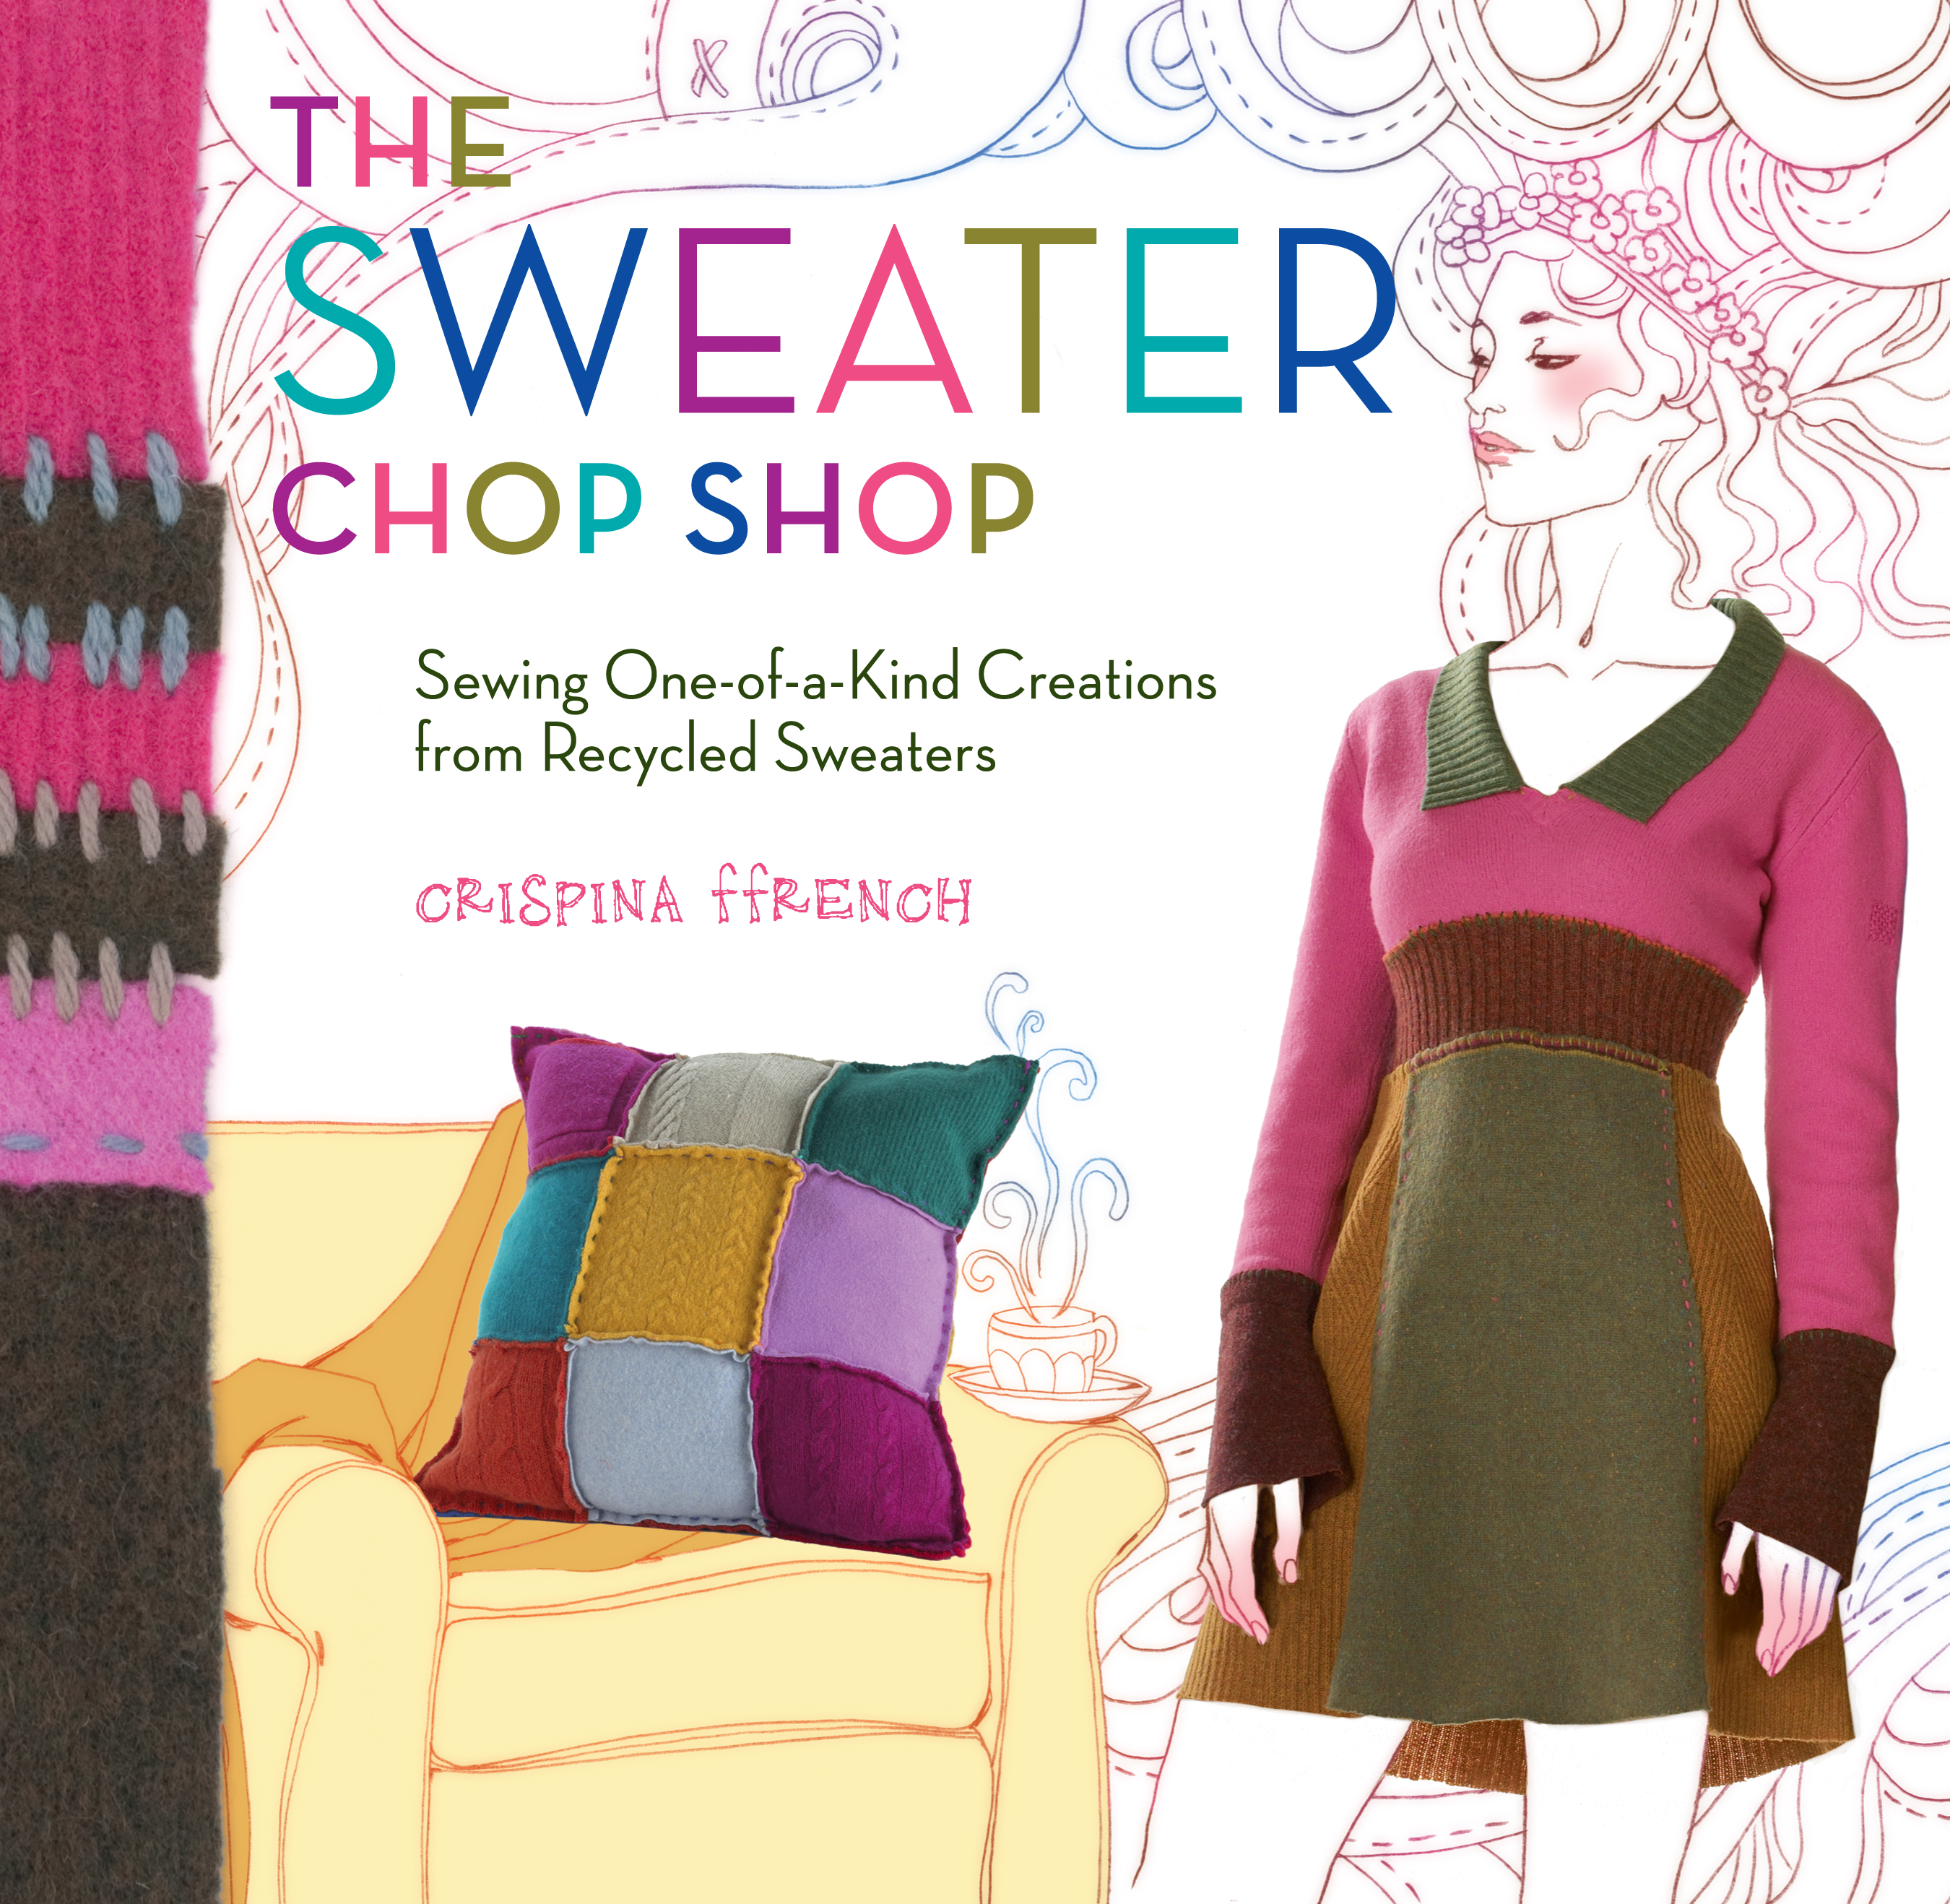 The Sweater Chop Shop Sewing One-of-a-Kind Creations from Recycled Sweaters - Crispina ffrench